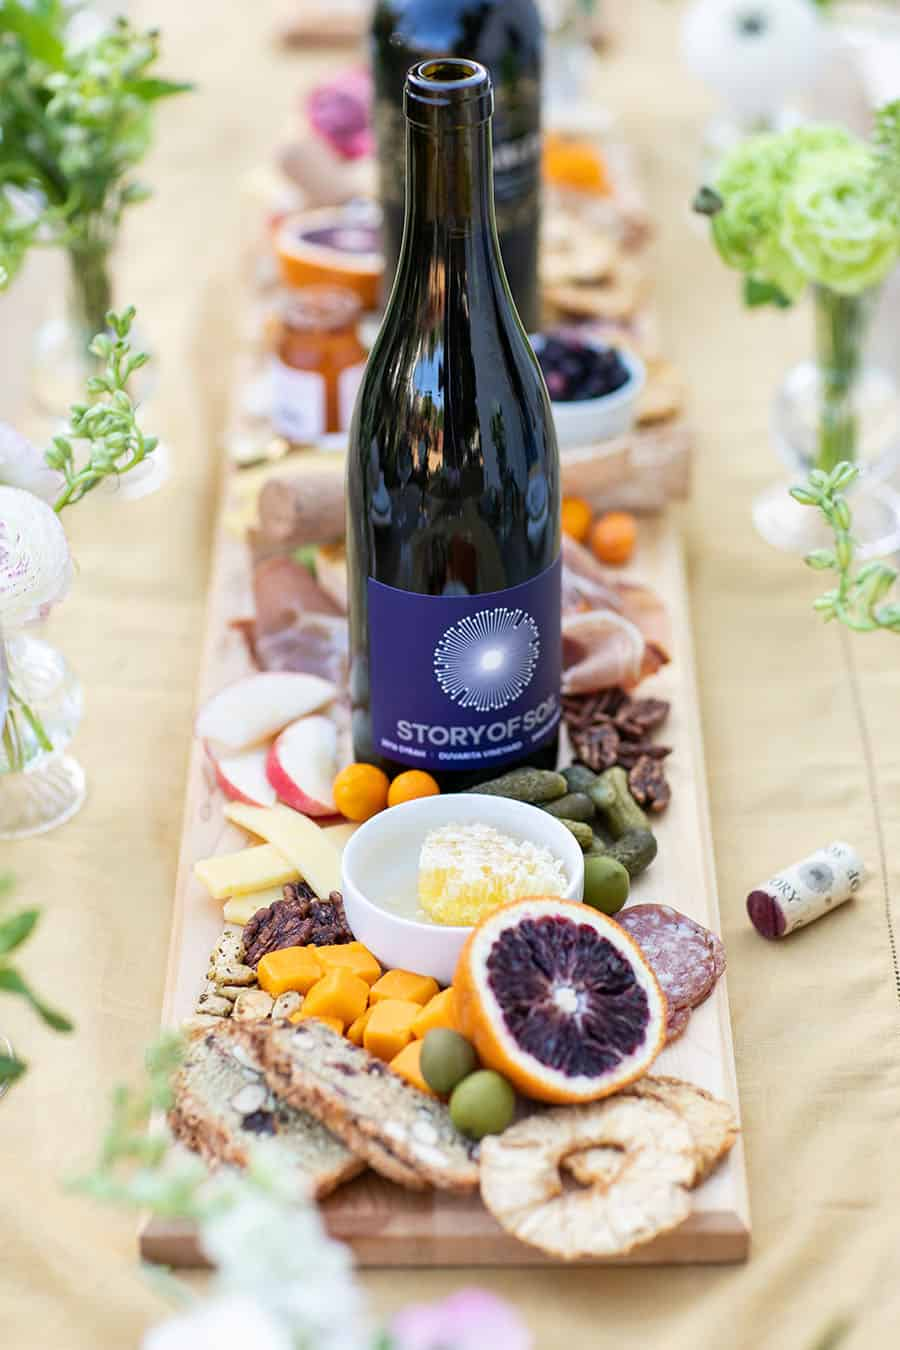 Story of Soil red wine bottle on a board with cheese and fruit.